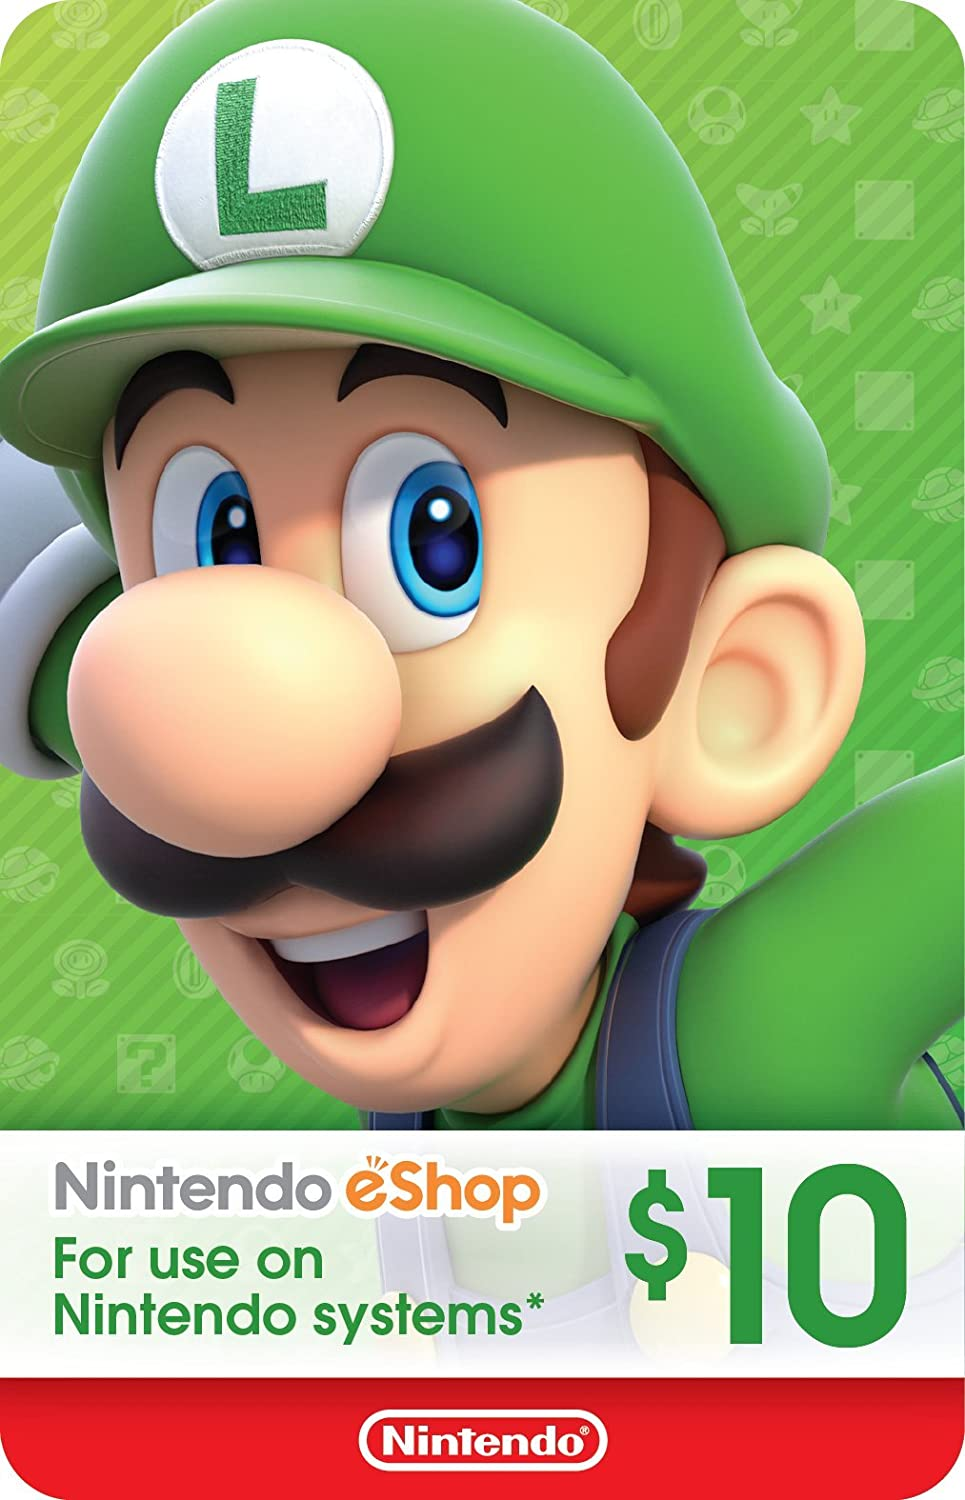 Amazoncom 10 Nintendo Eshop Gift Card Digital Code - roblox game card for nintendo switch